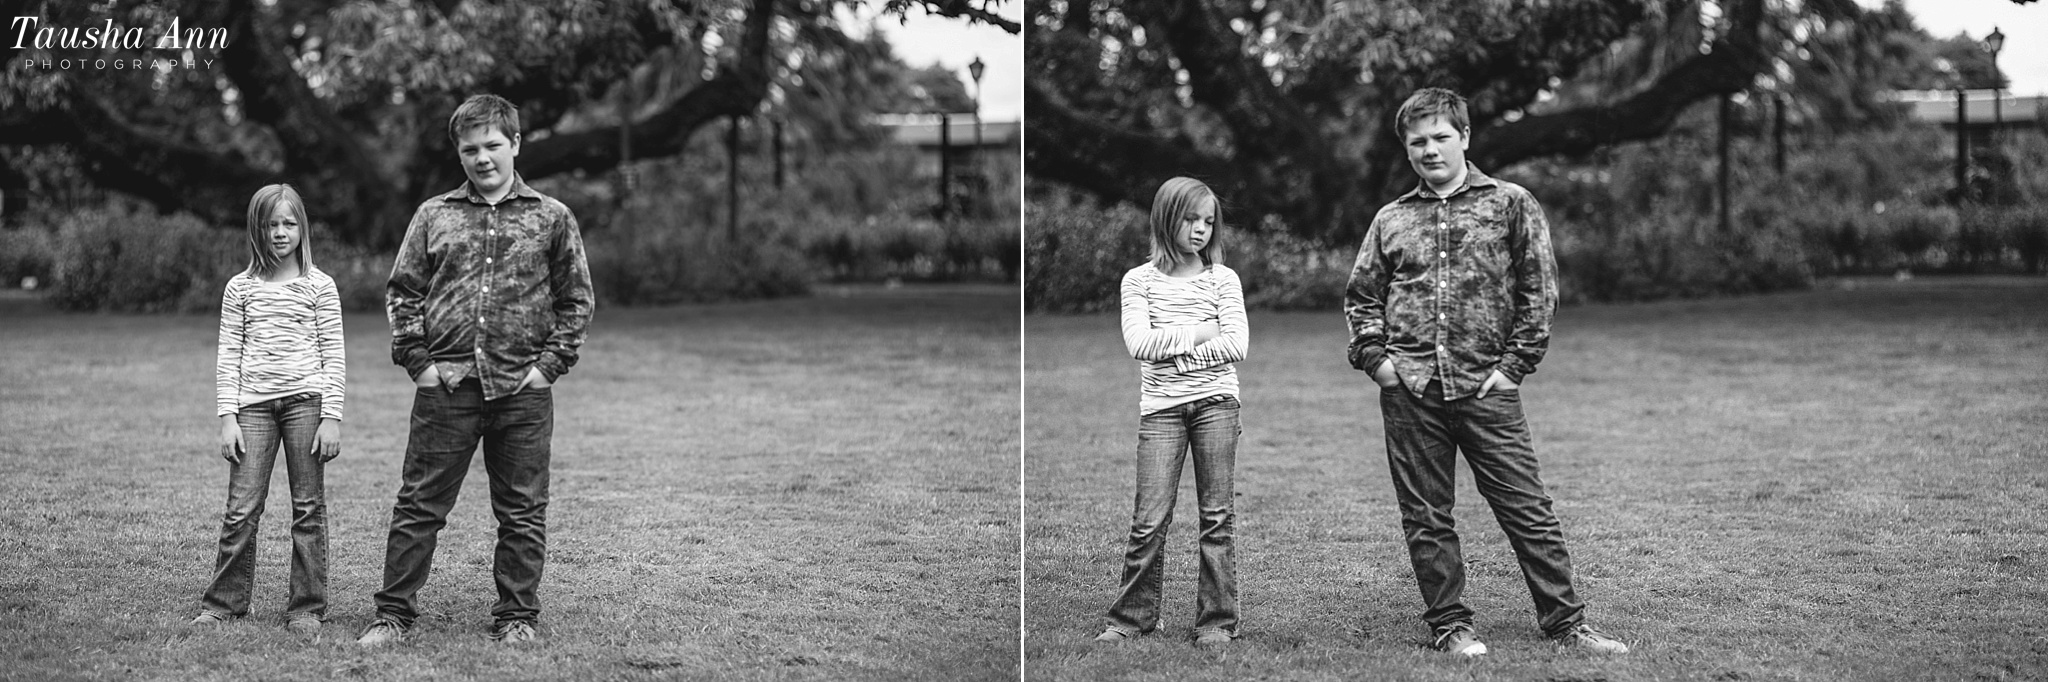 Nashville_Family_Photographer_Tausha_Ann_Photography_Eugene_Oregon_0034